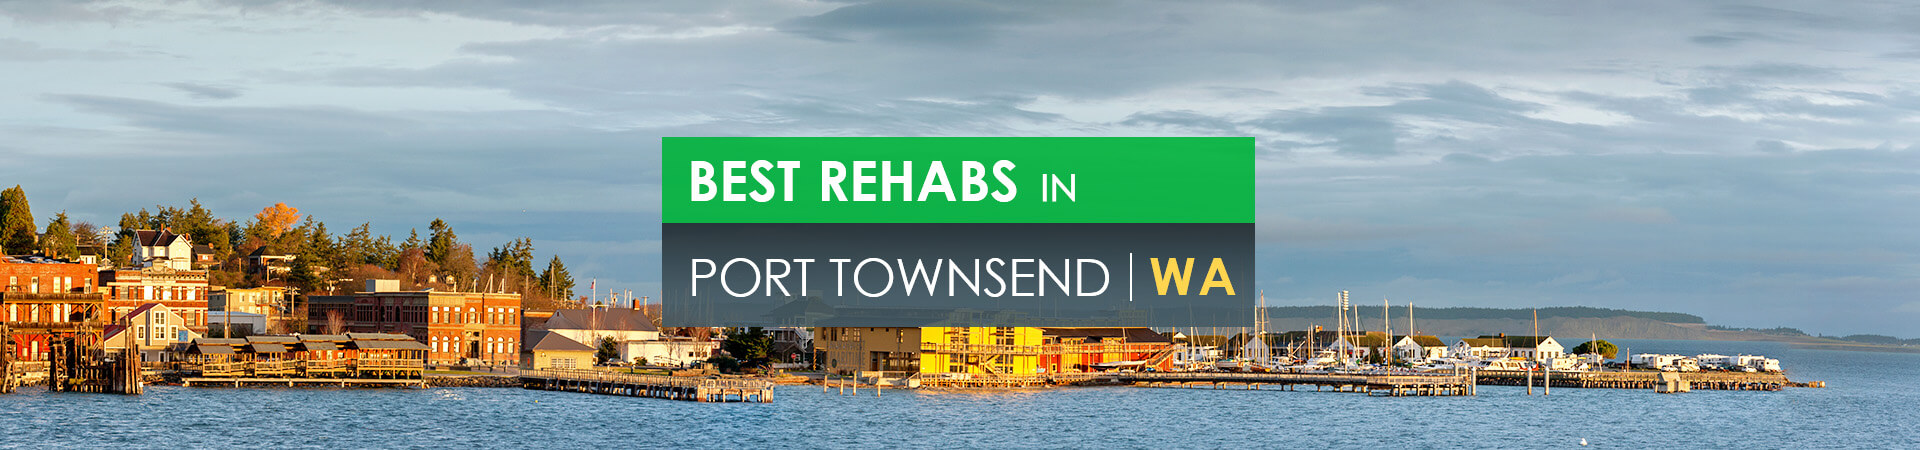 Best rehabs in Port Townsend, WA